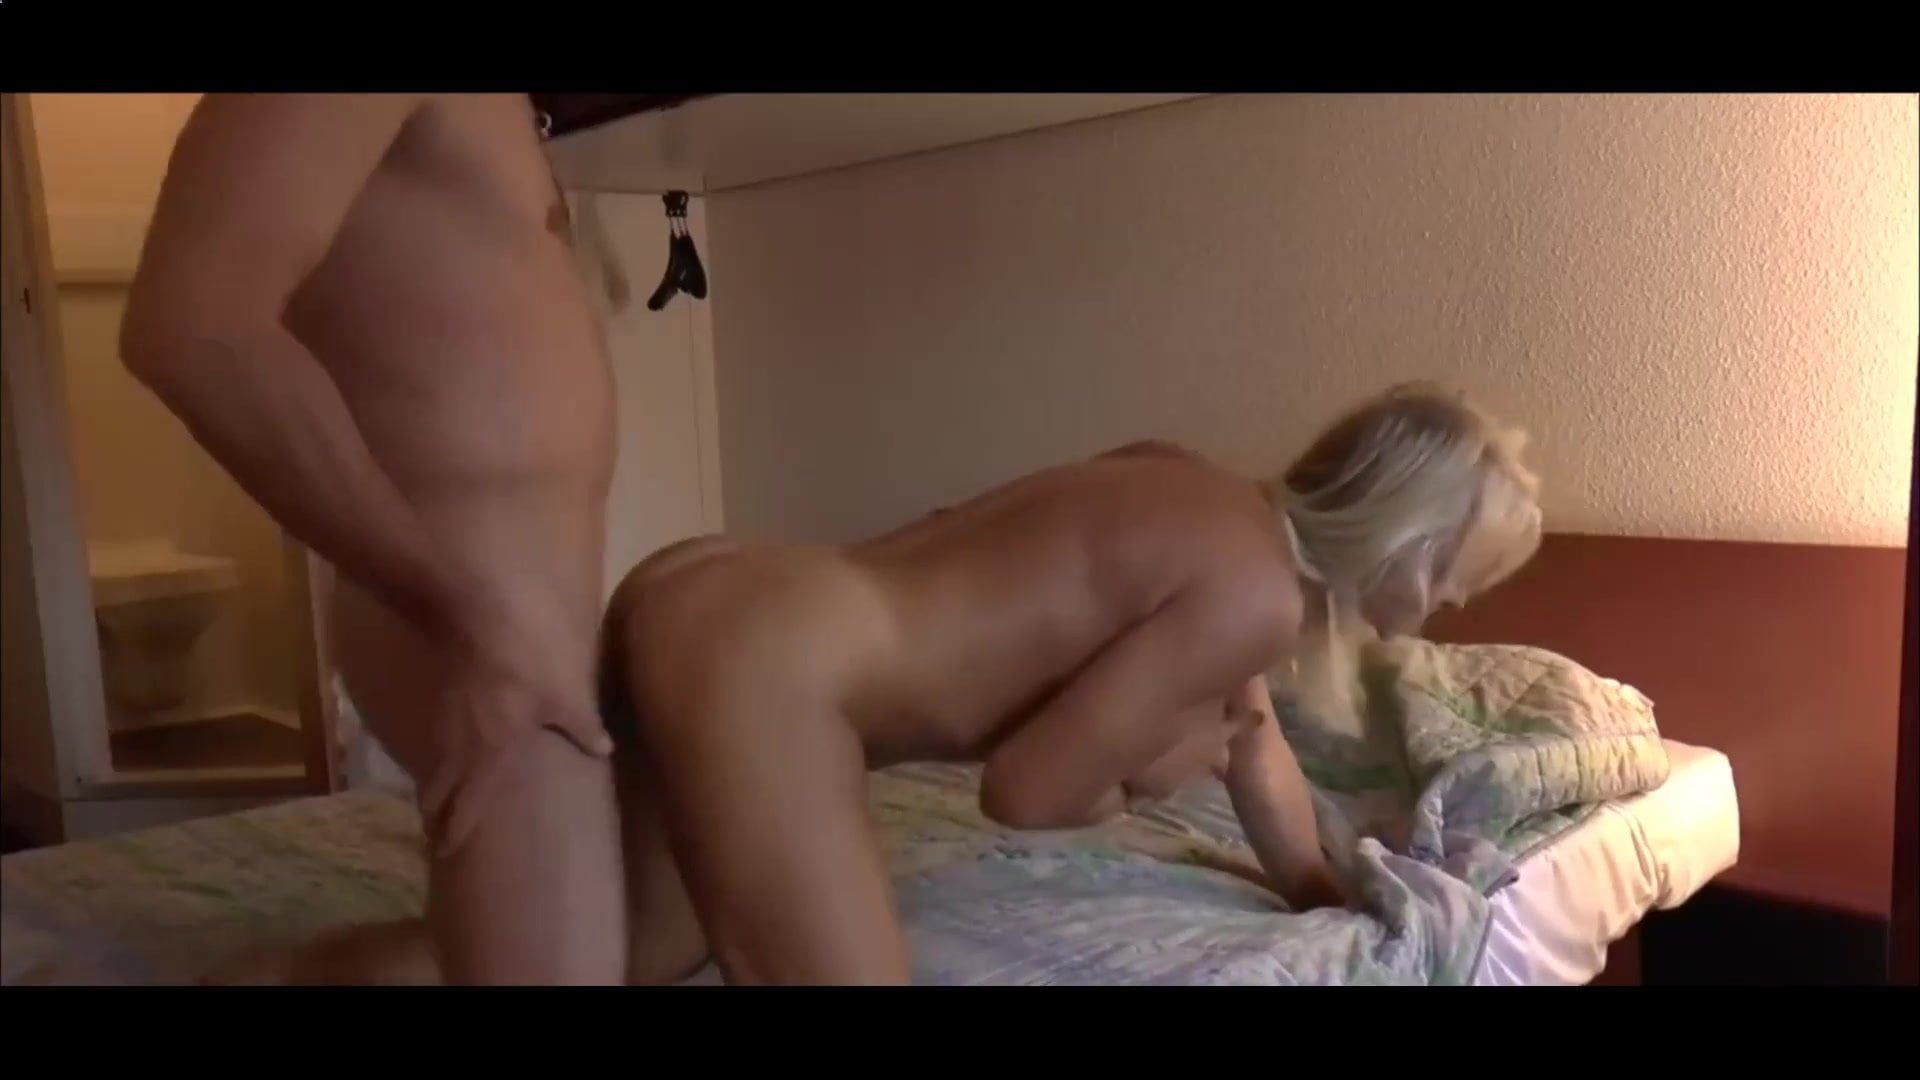 Hot blonde getting fucked hard